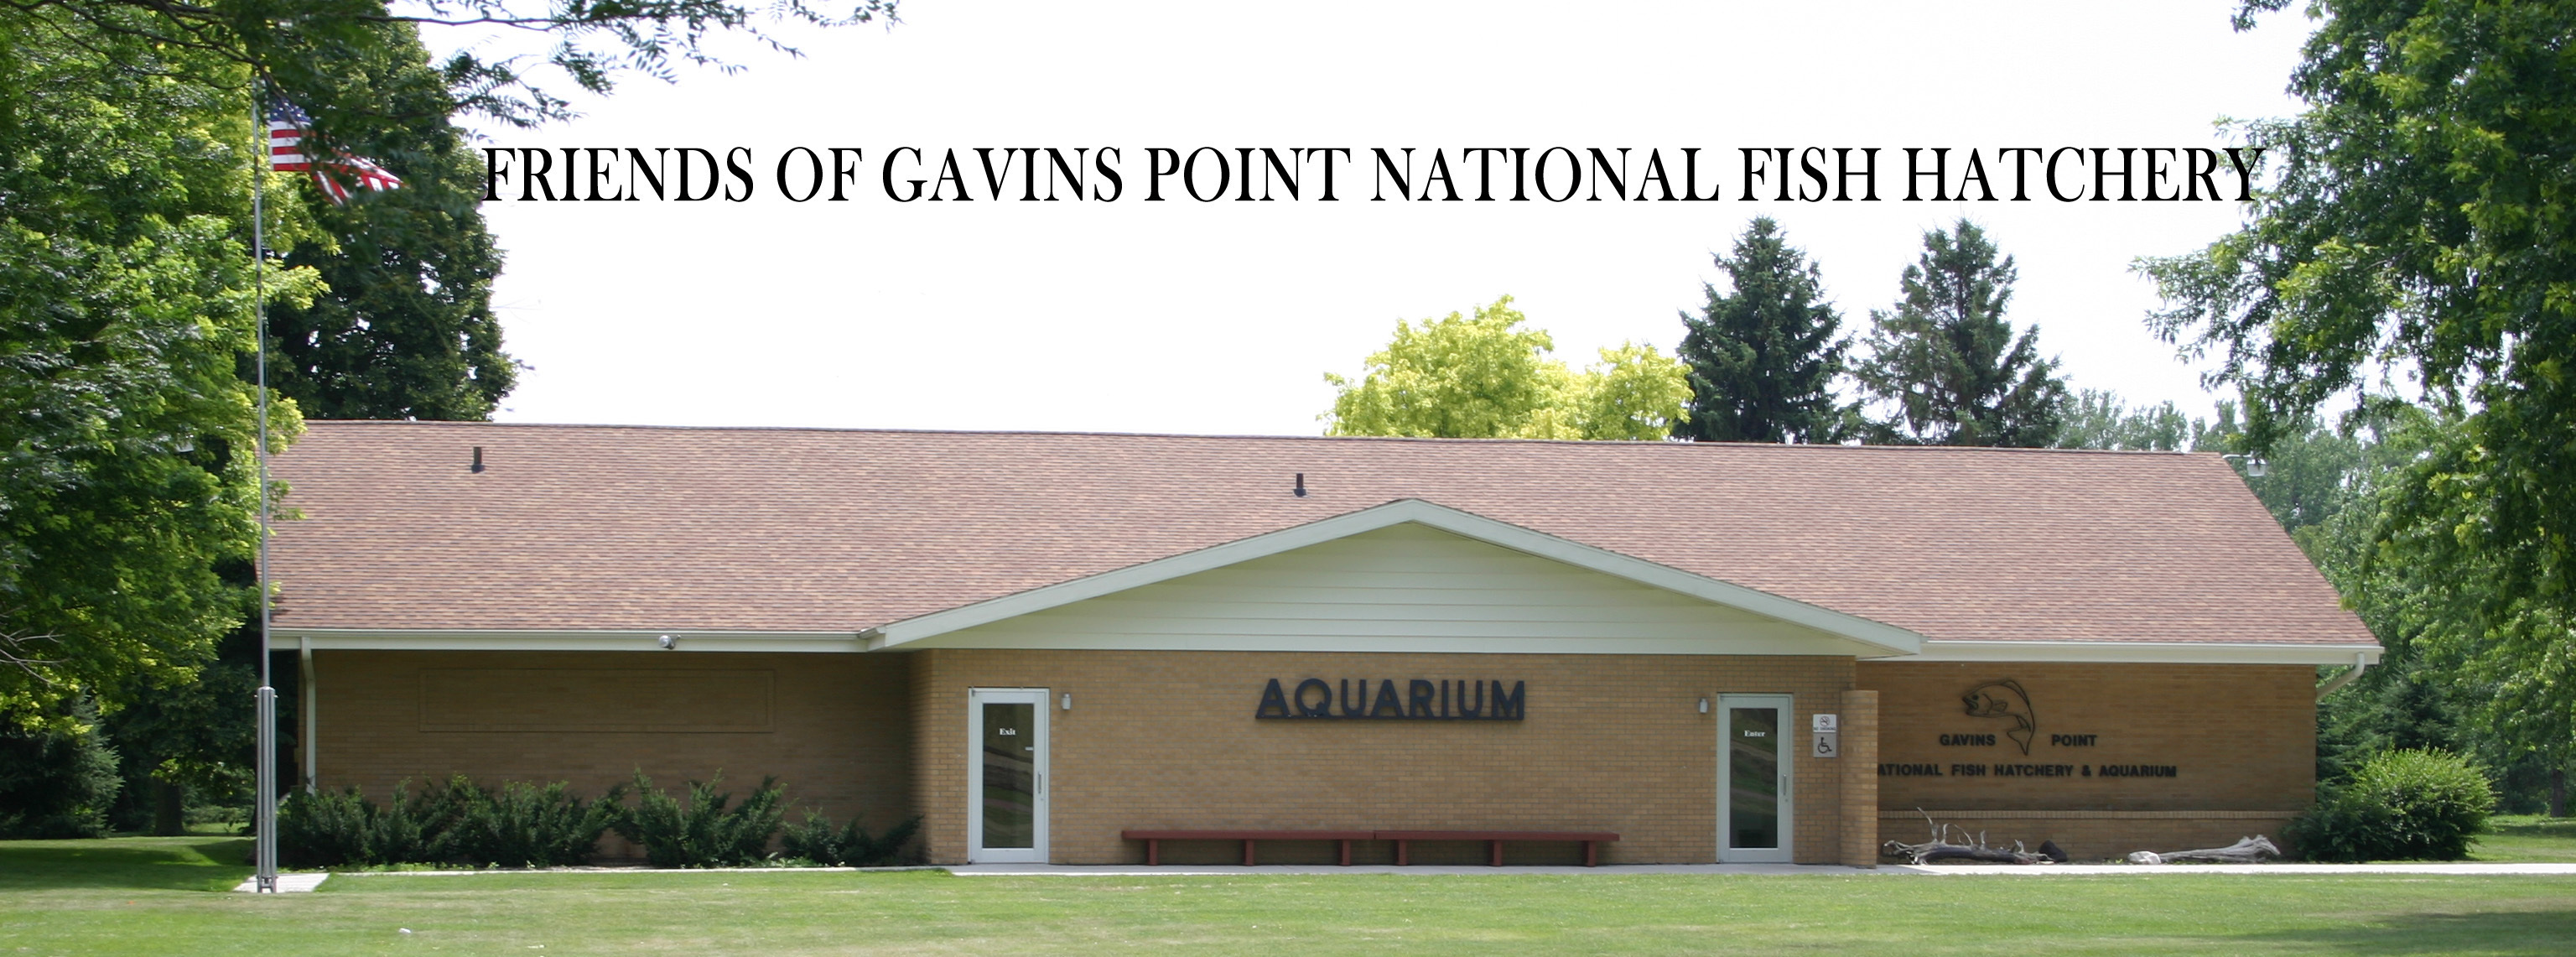 Friends of Gavin's Point National Fish Hatchery